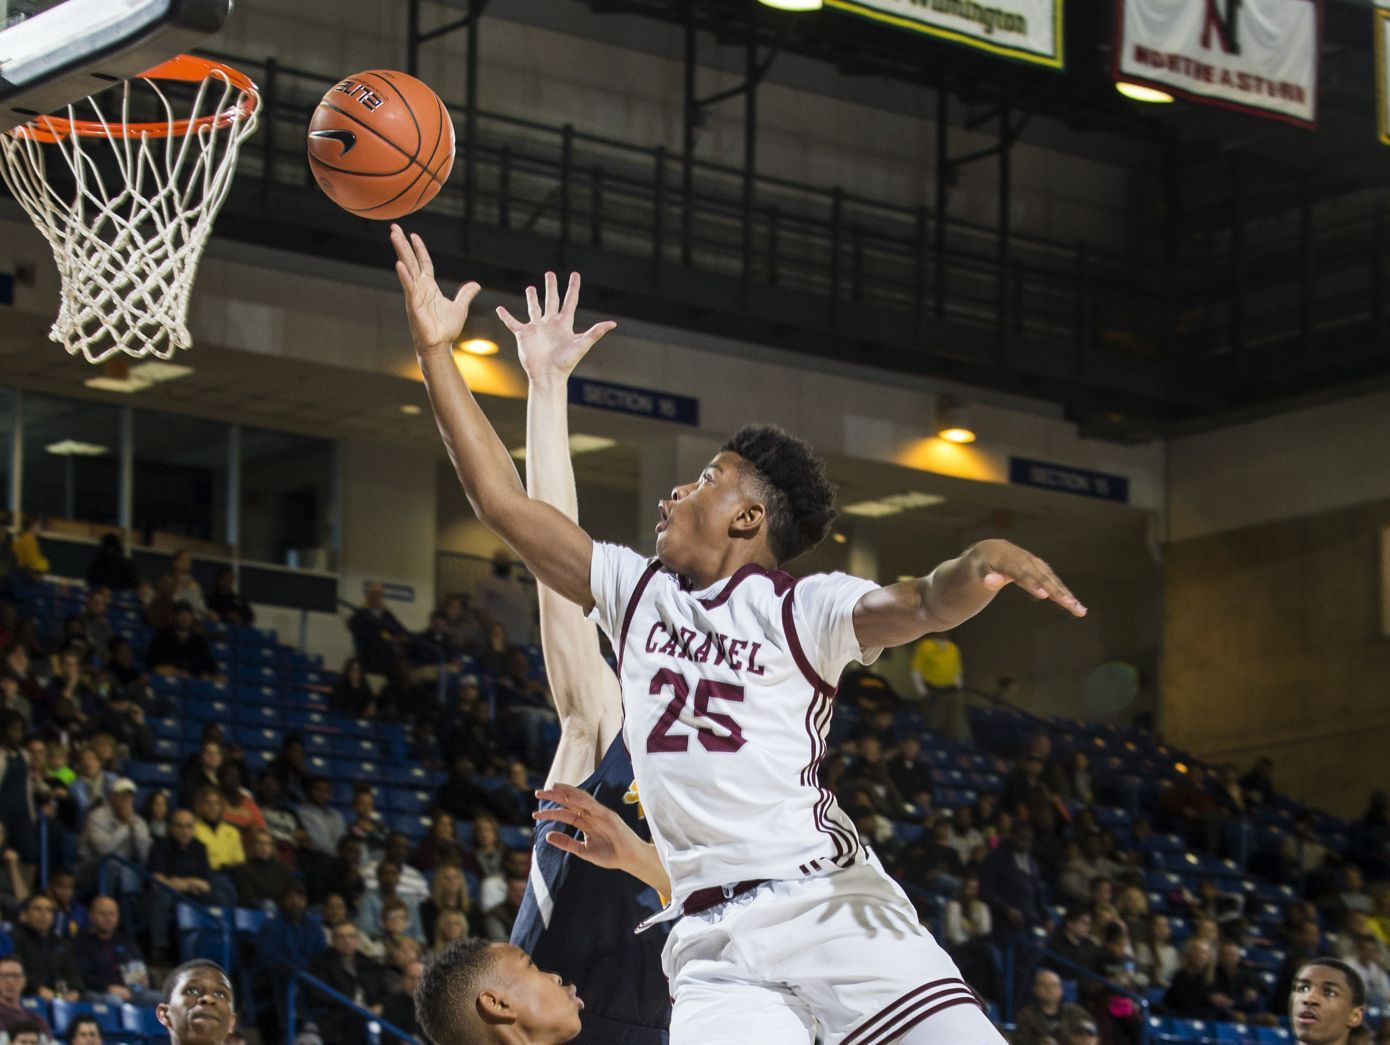 Caravel's Dwayne Earl puts up a shot over Sanford's Corey Perkins in the second half of Caravel Academy's 66-56 win over Sanford School in the quarterfinals of the DIAA Boy's Basketball Tournament at the Bob Carpenter Center in Newark on Sunday afternoon.